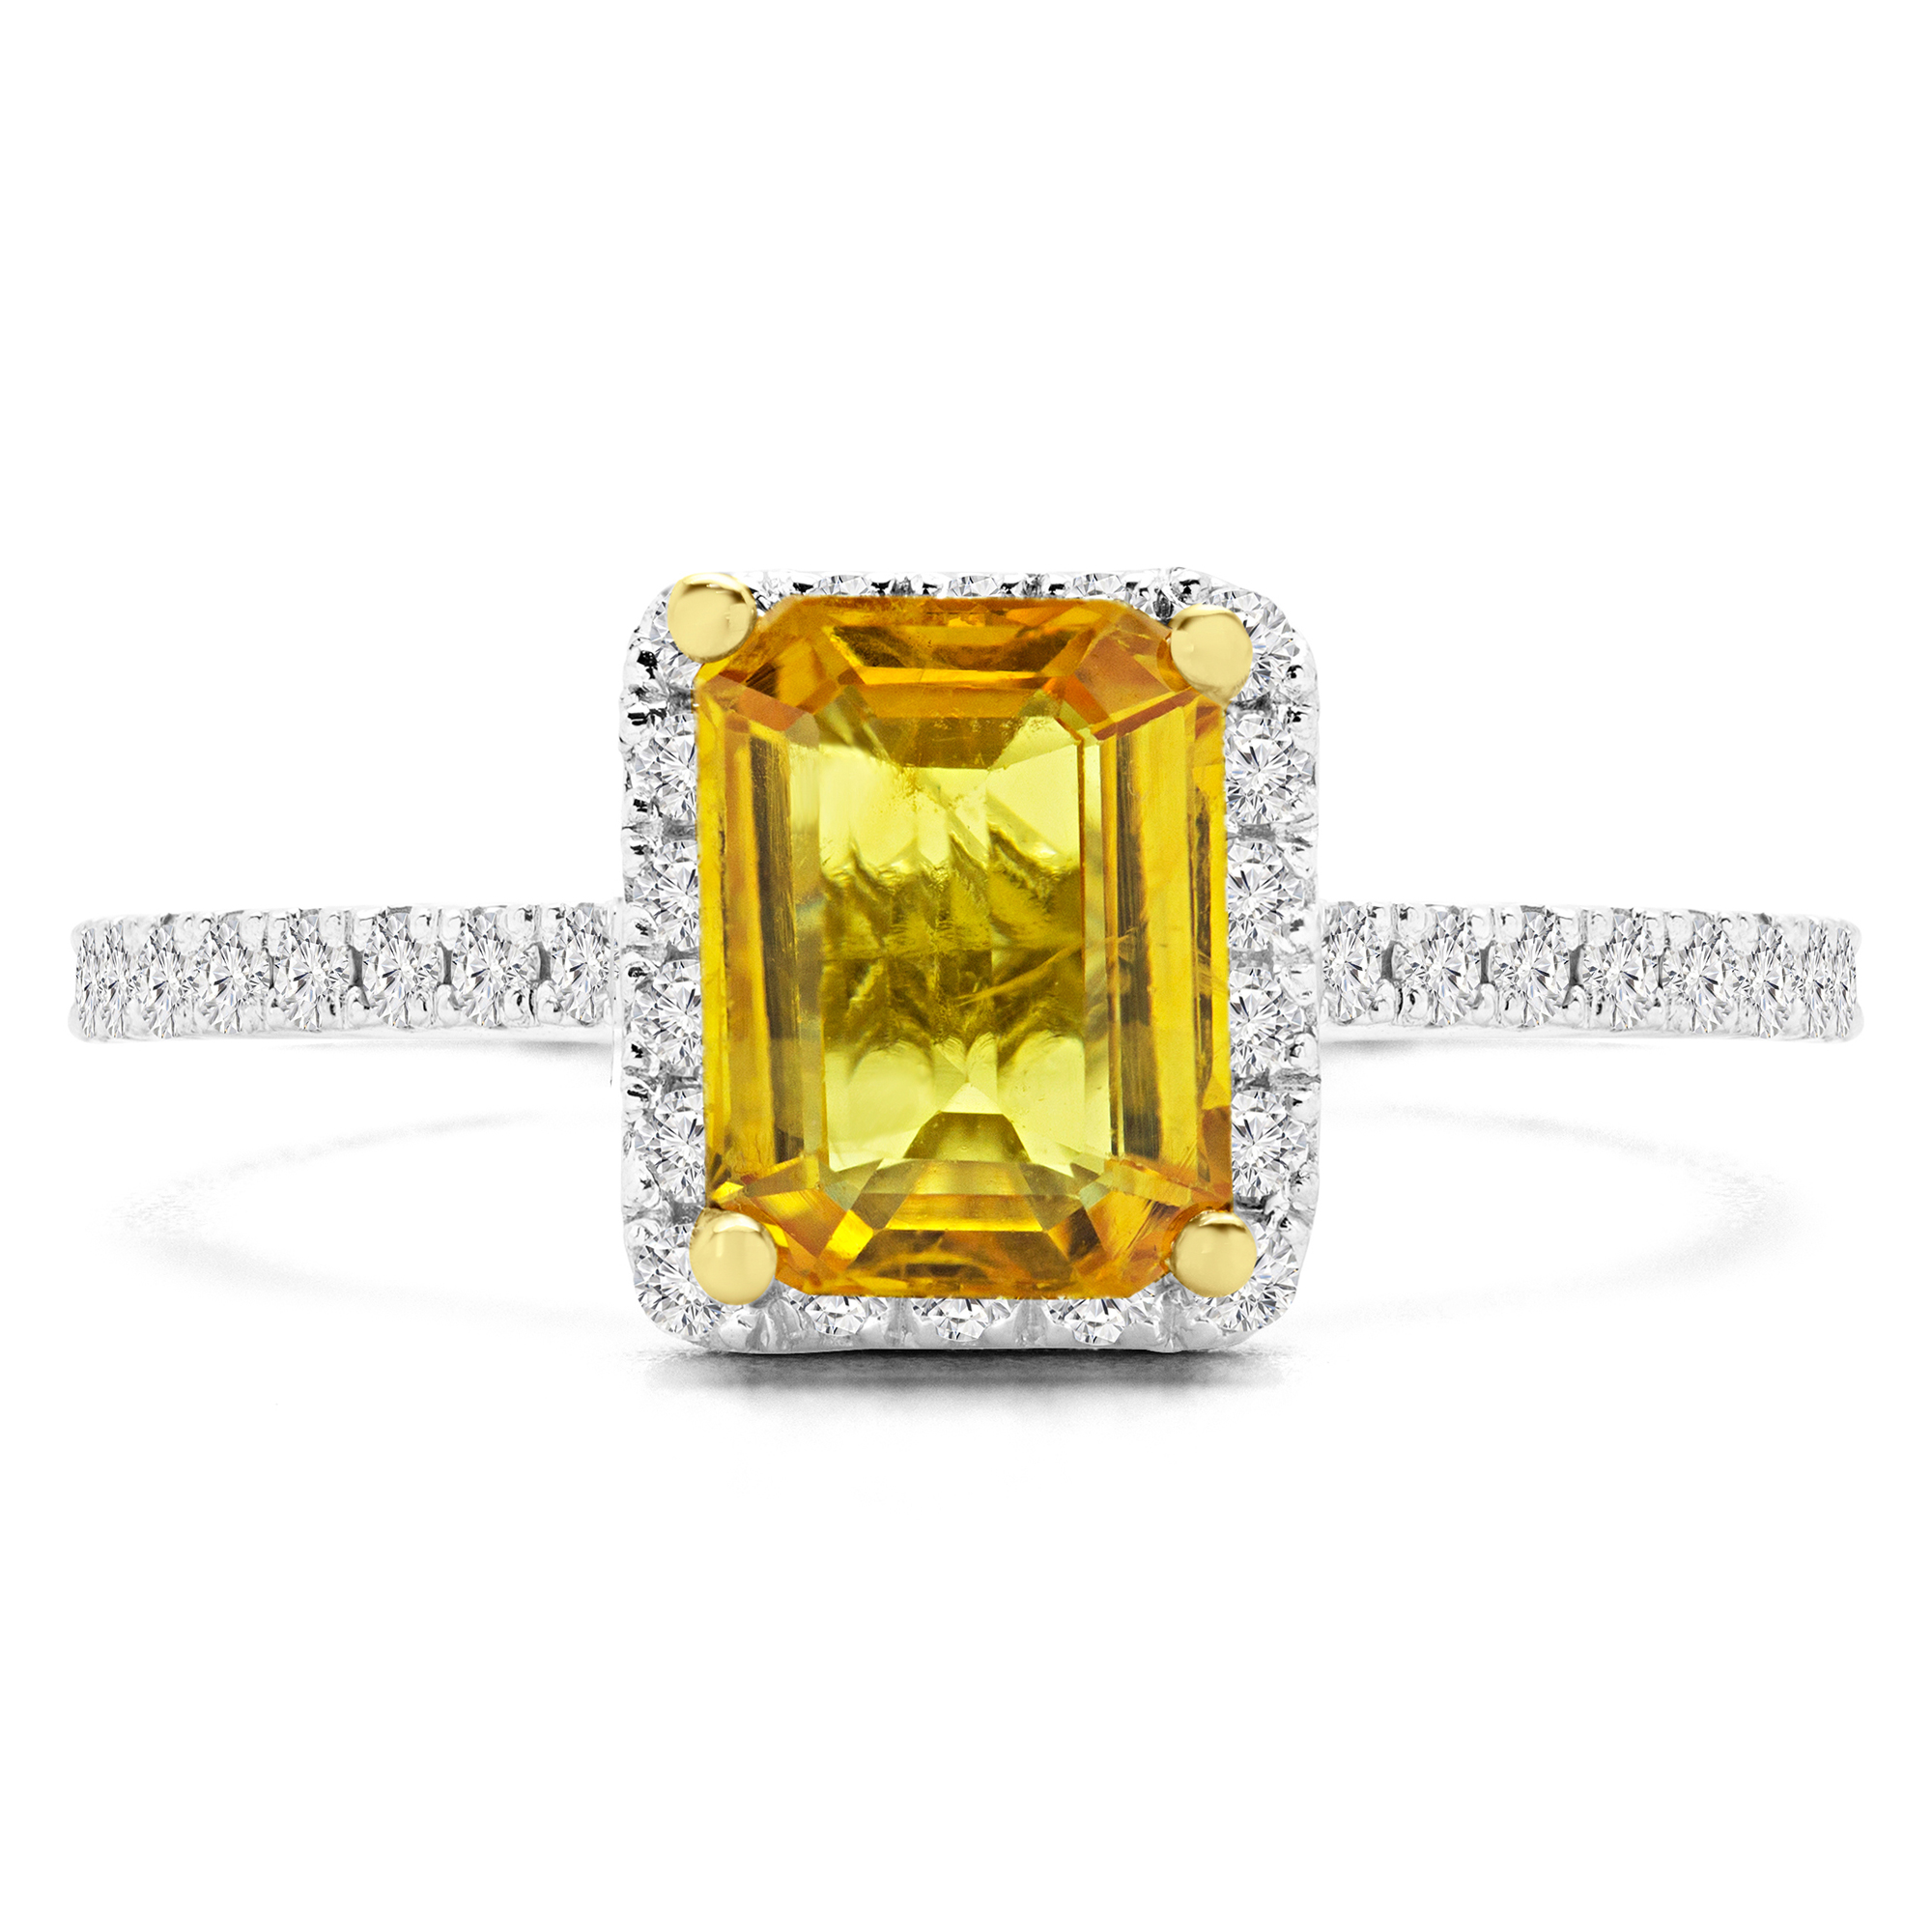 2 1/2 CTW Emerald Yellow Sapphire Halo Cocktail Ring in 14K White Gold (MD170170) - image 1 de 2